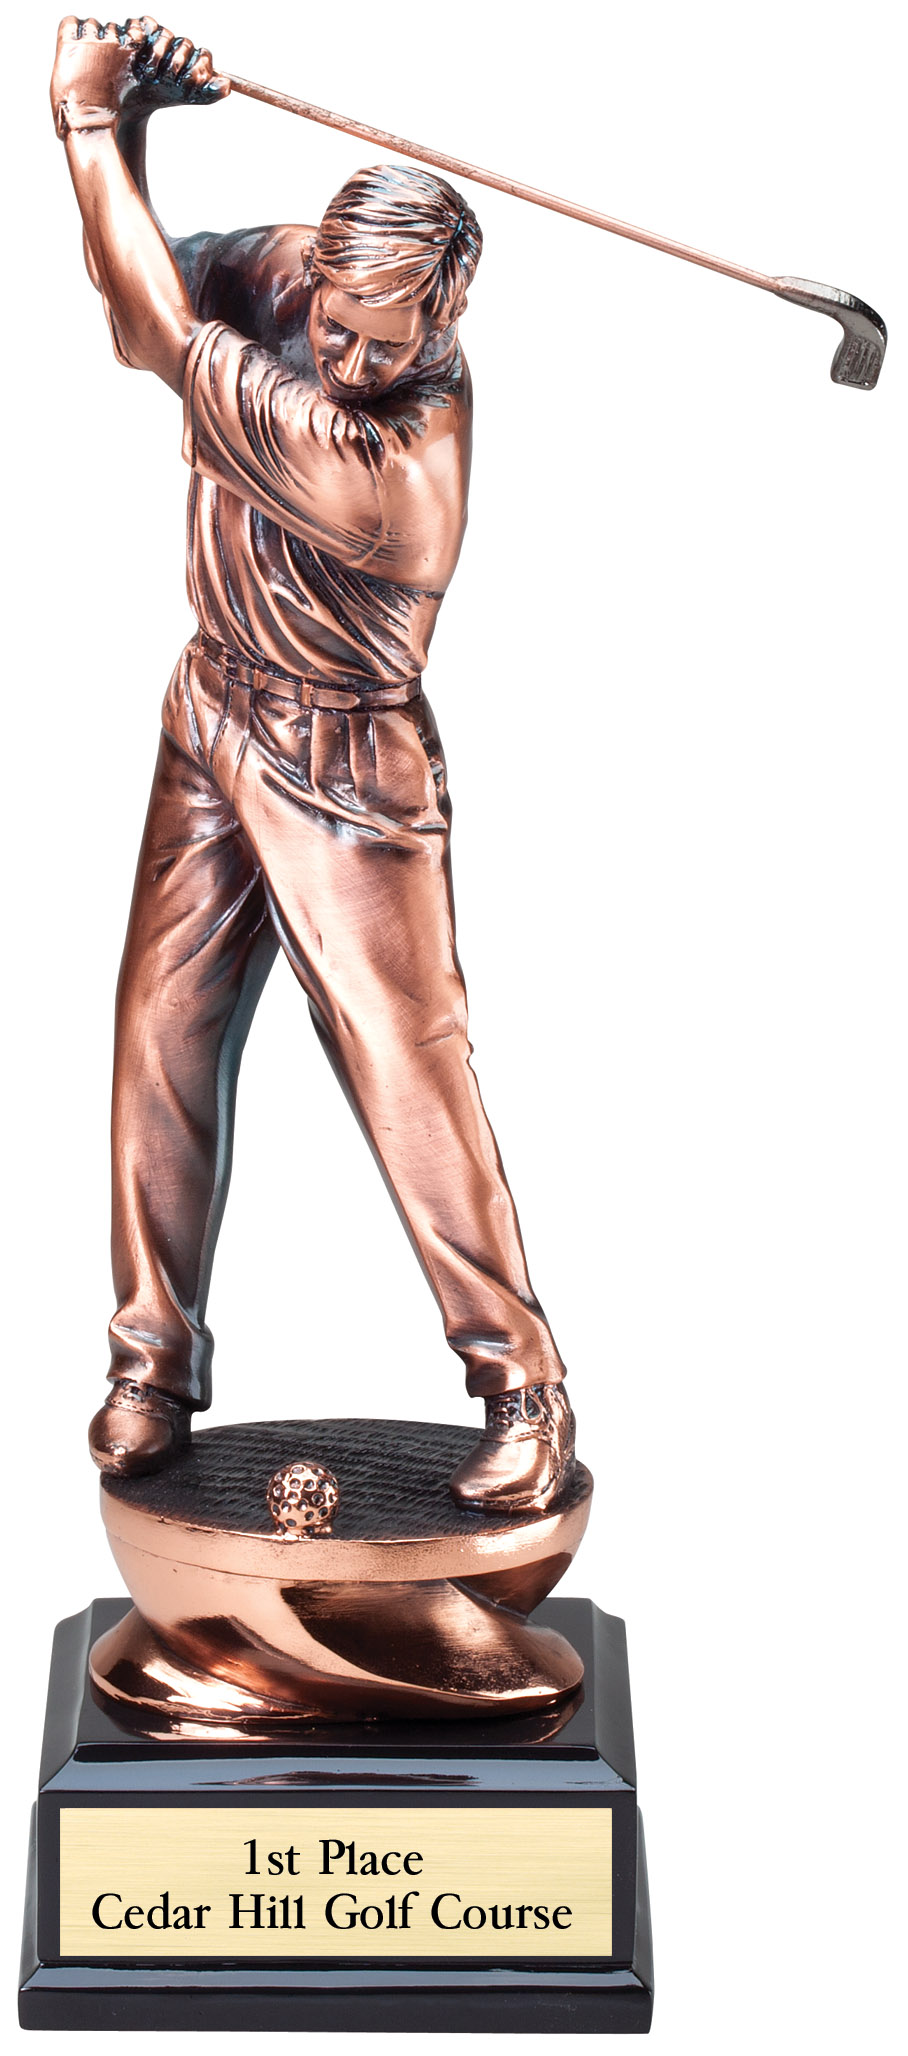 "Copper Finish - Driver, Male Large: G1503 - 11"" tall - $47 Medium: G1502 - 9.25"" tall - $40 Small: G1501 - 8.25"" tall - $30"